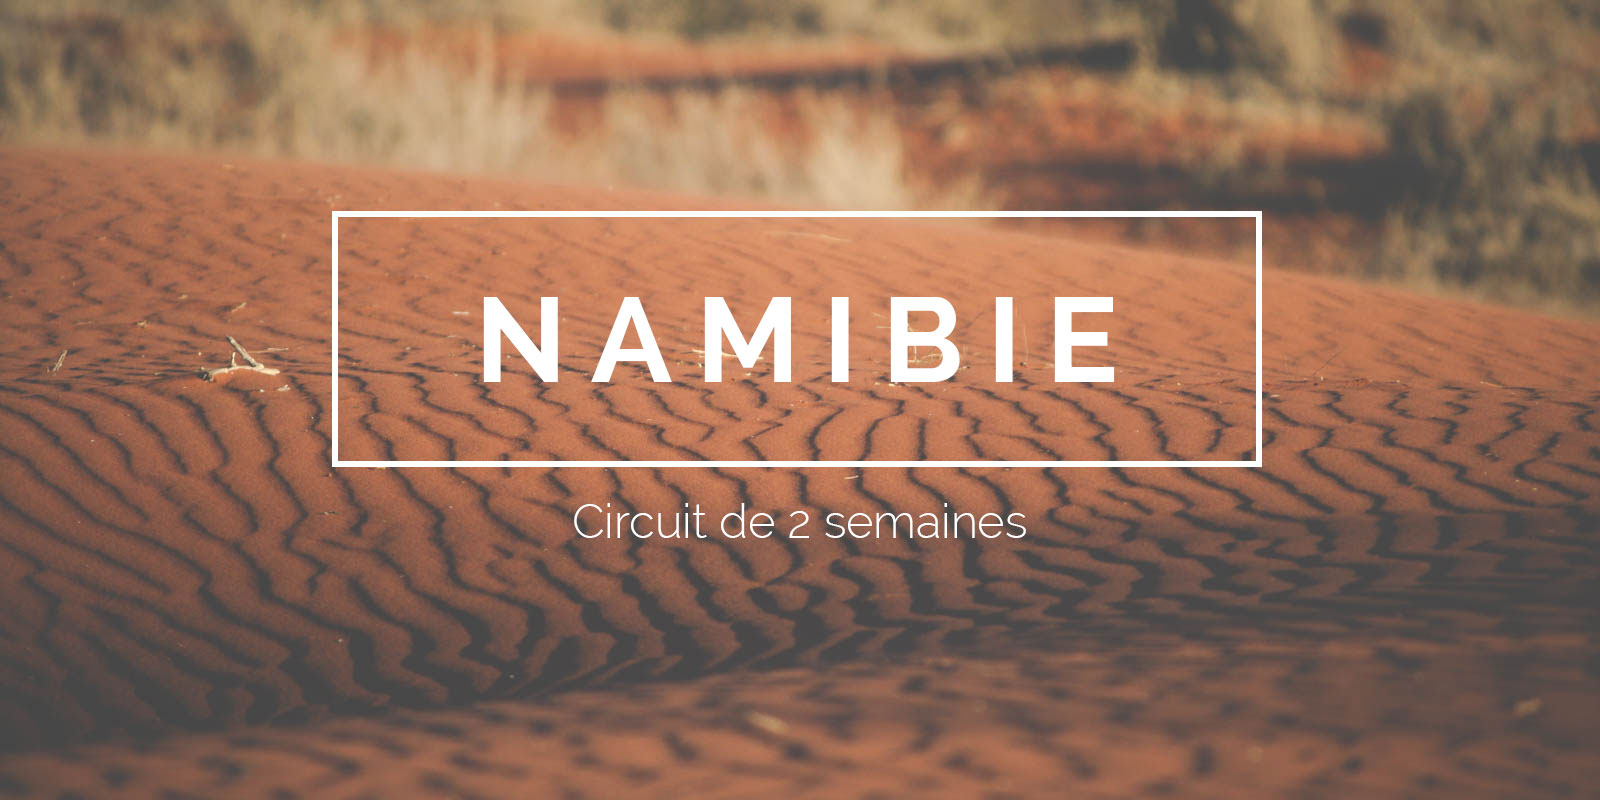 Namibie title